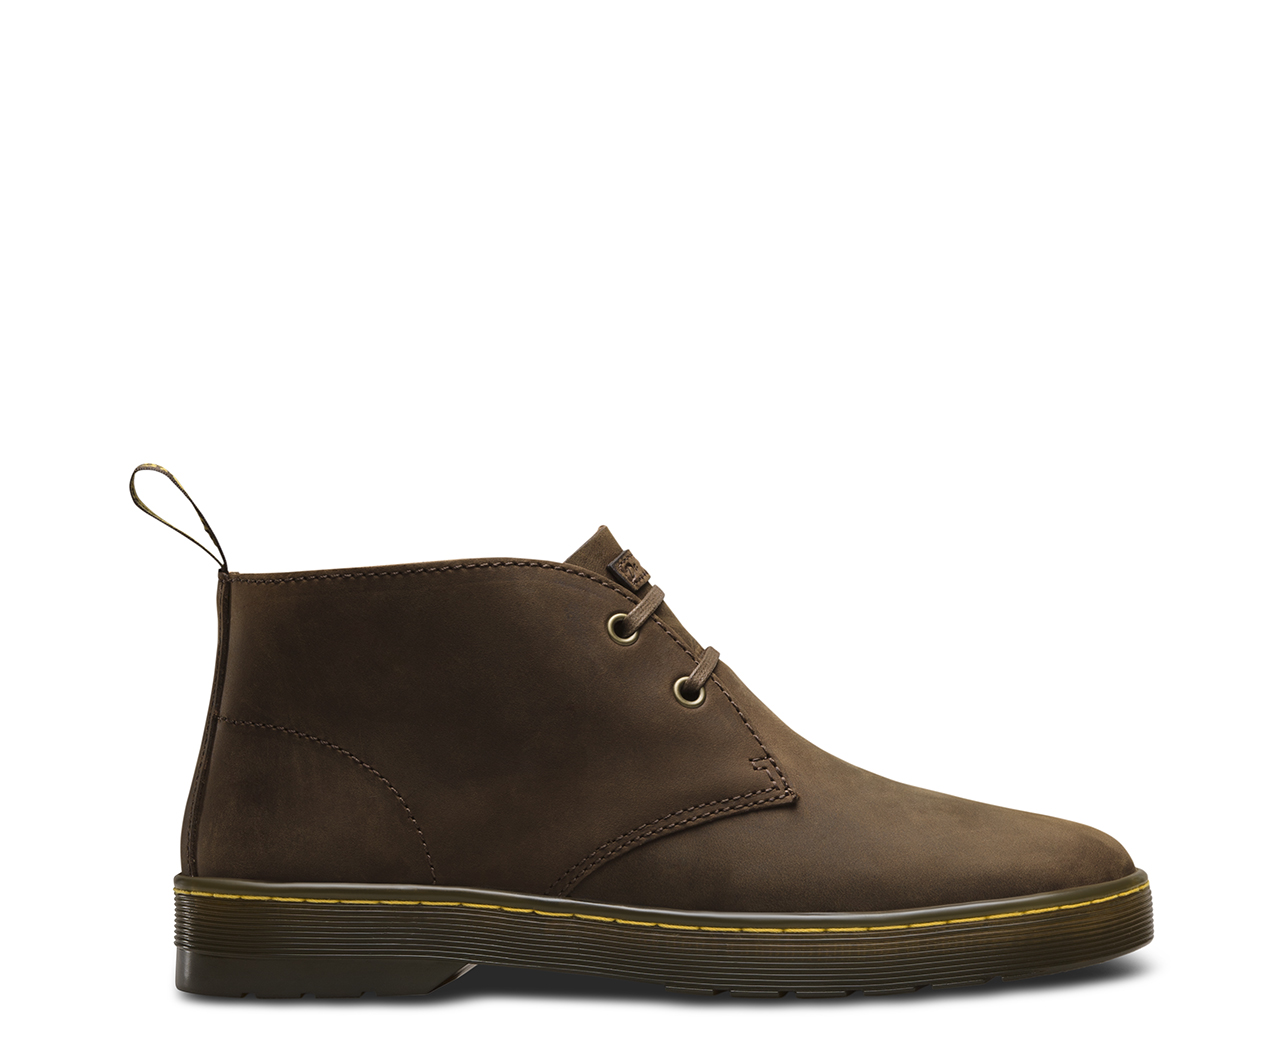 98556656053 Dr Martens Cabrillo Wyoming Shoe Brown